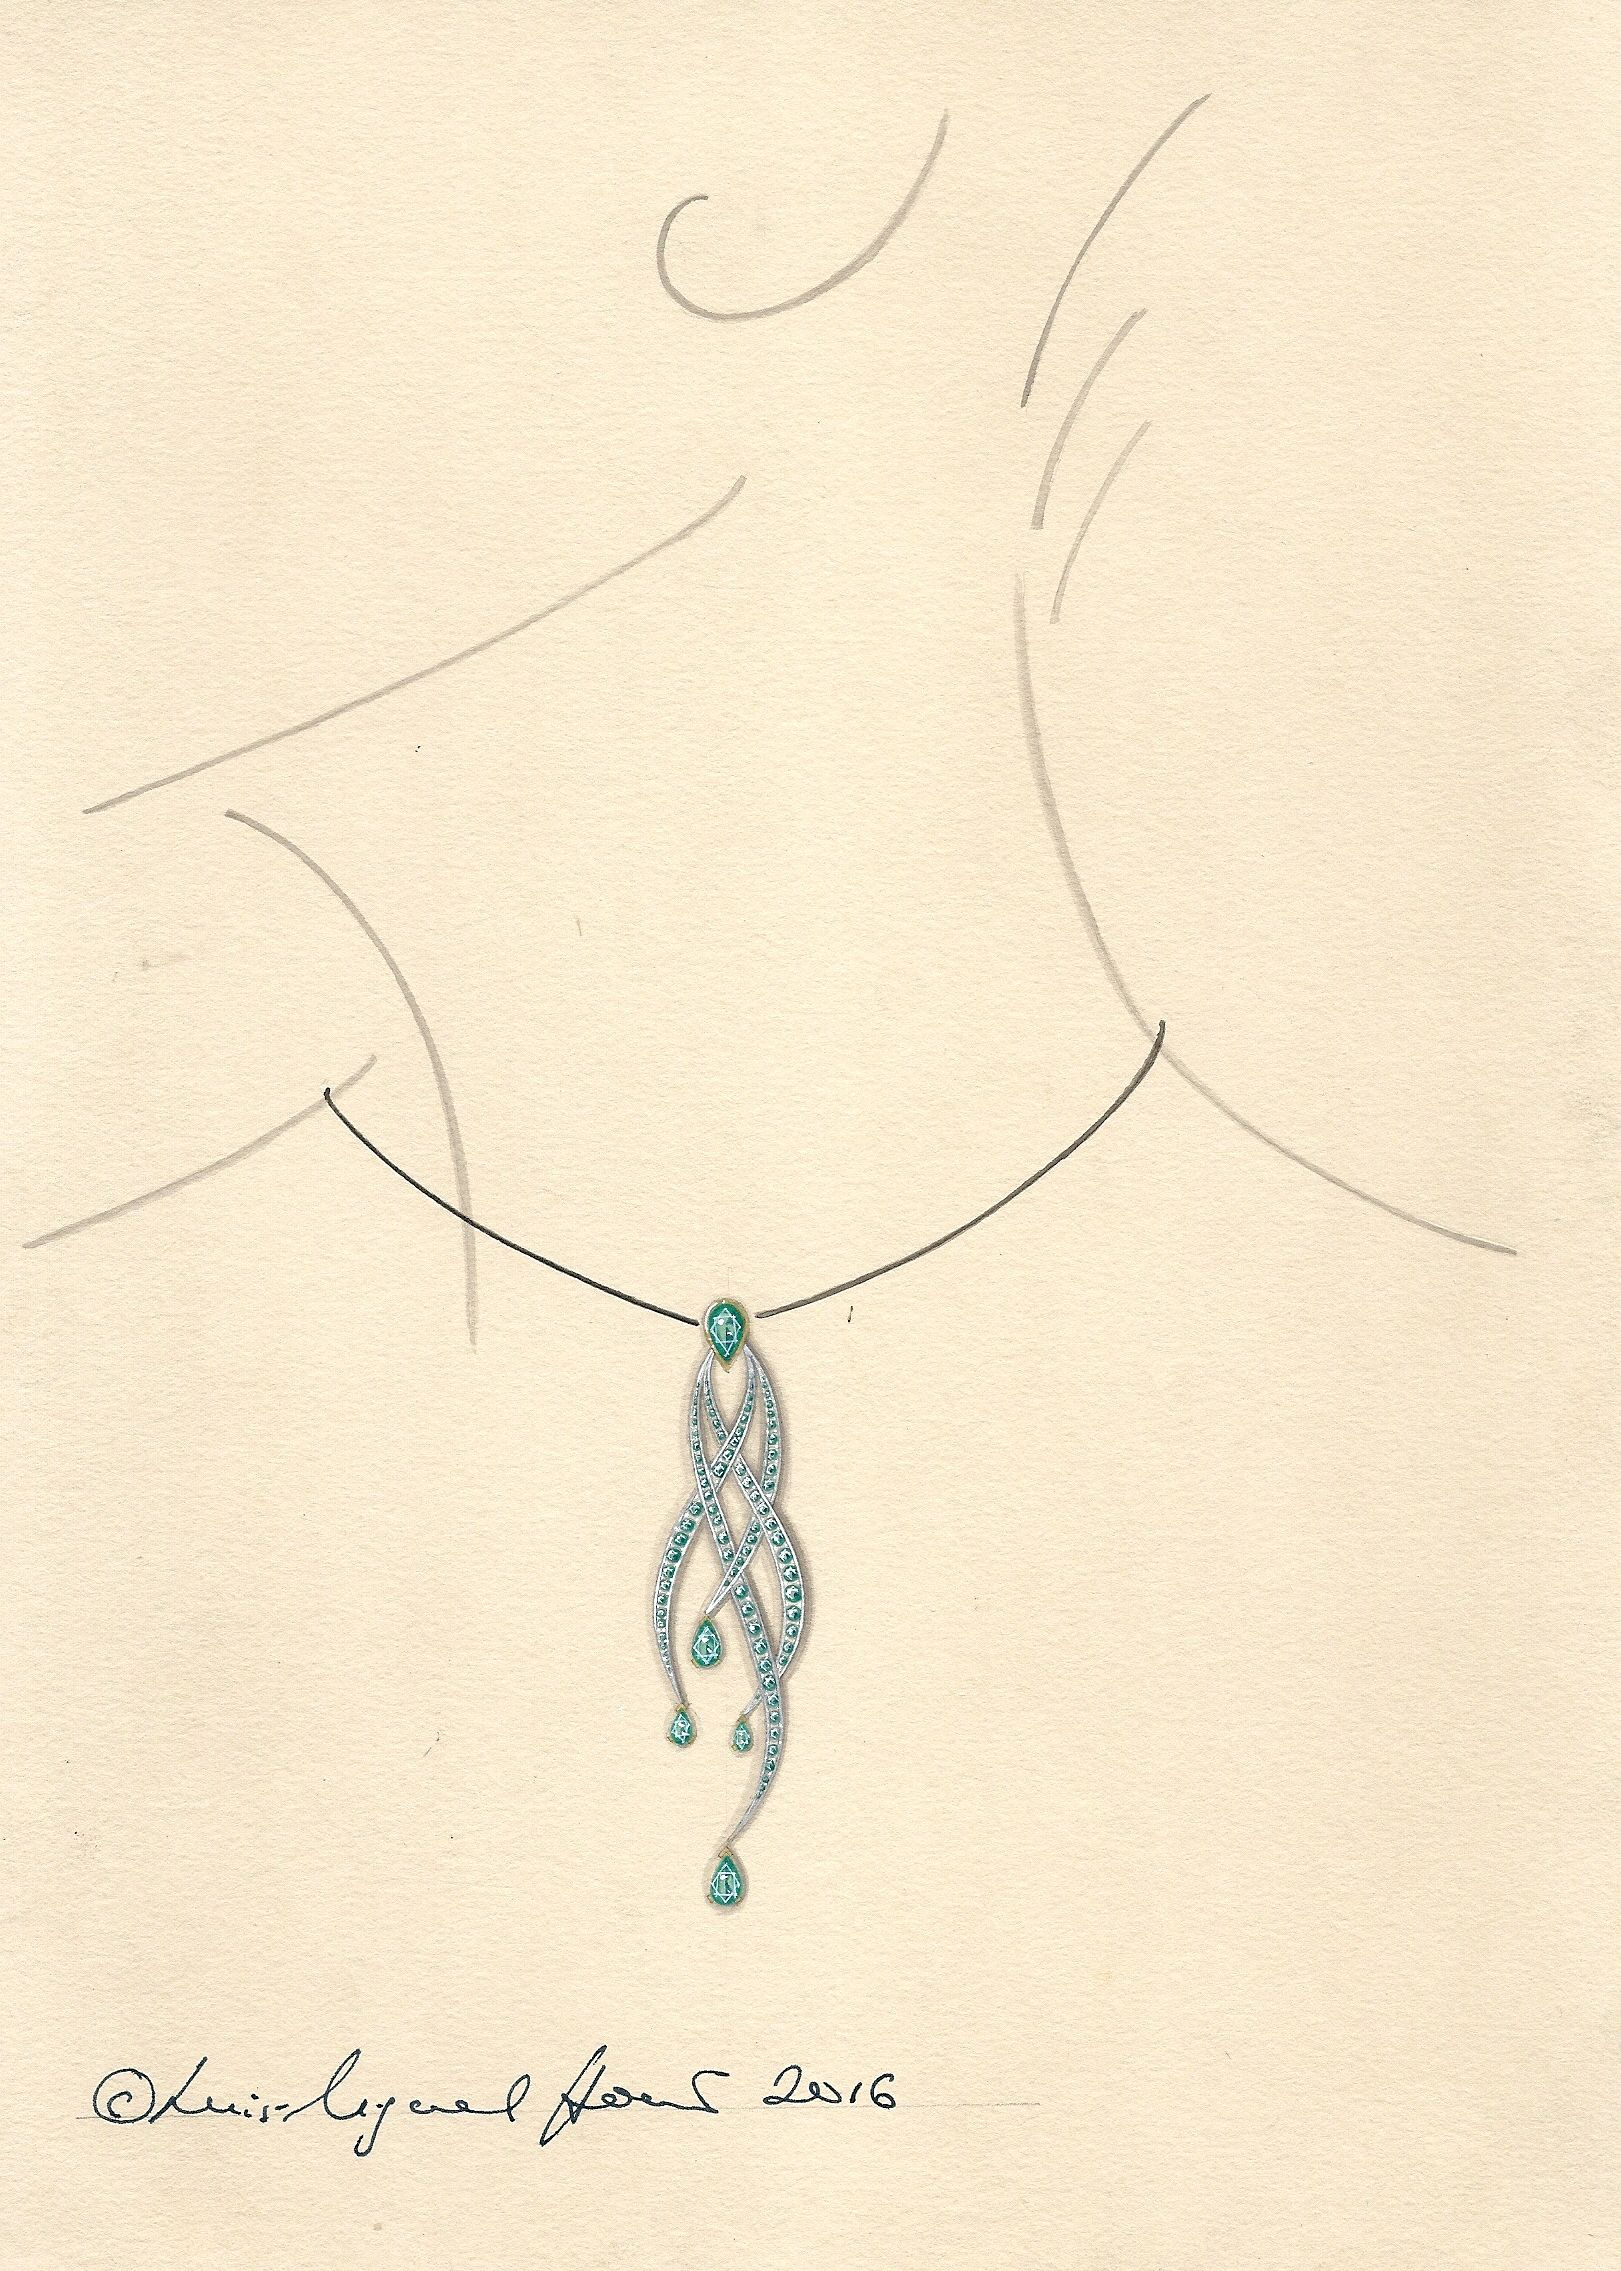 Design for an emerald pendant, in asymmetrical style, with emerald drops. Rendered in gouache and Chinese ink.